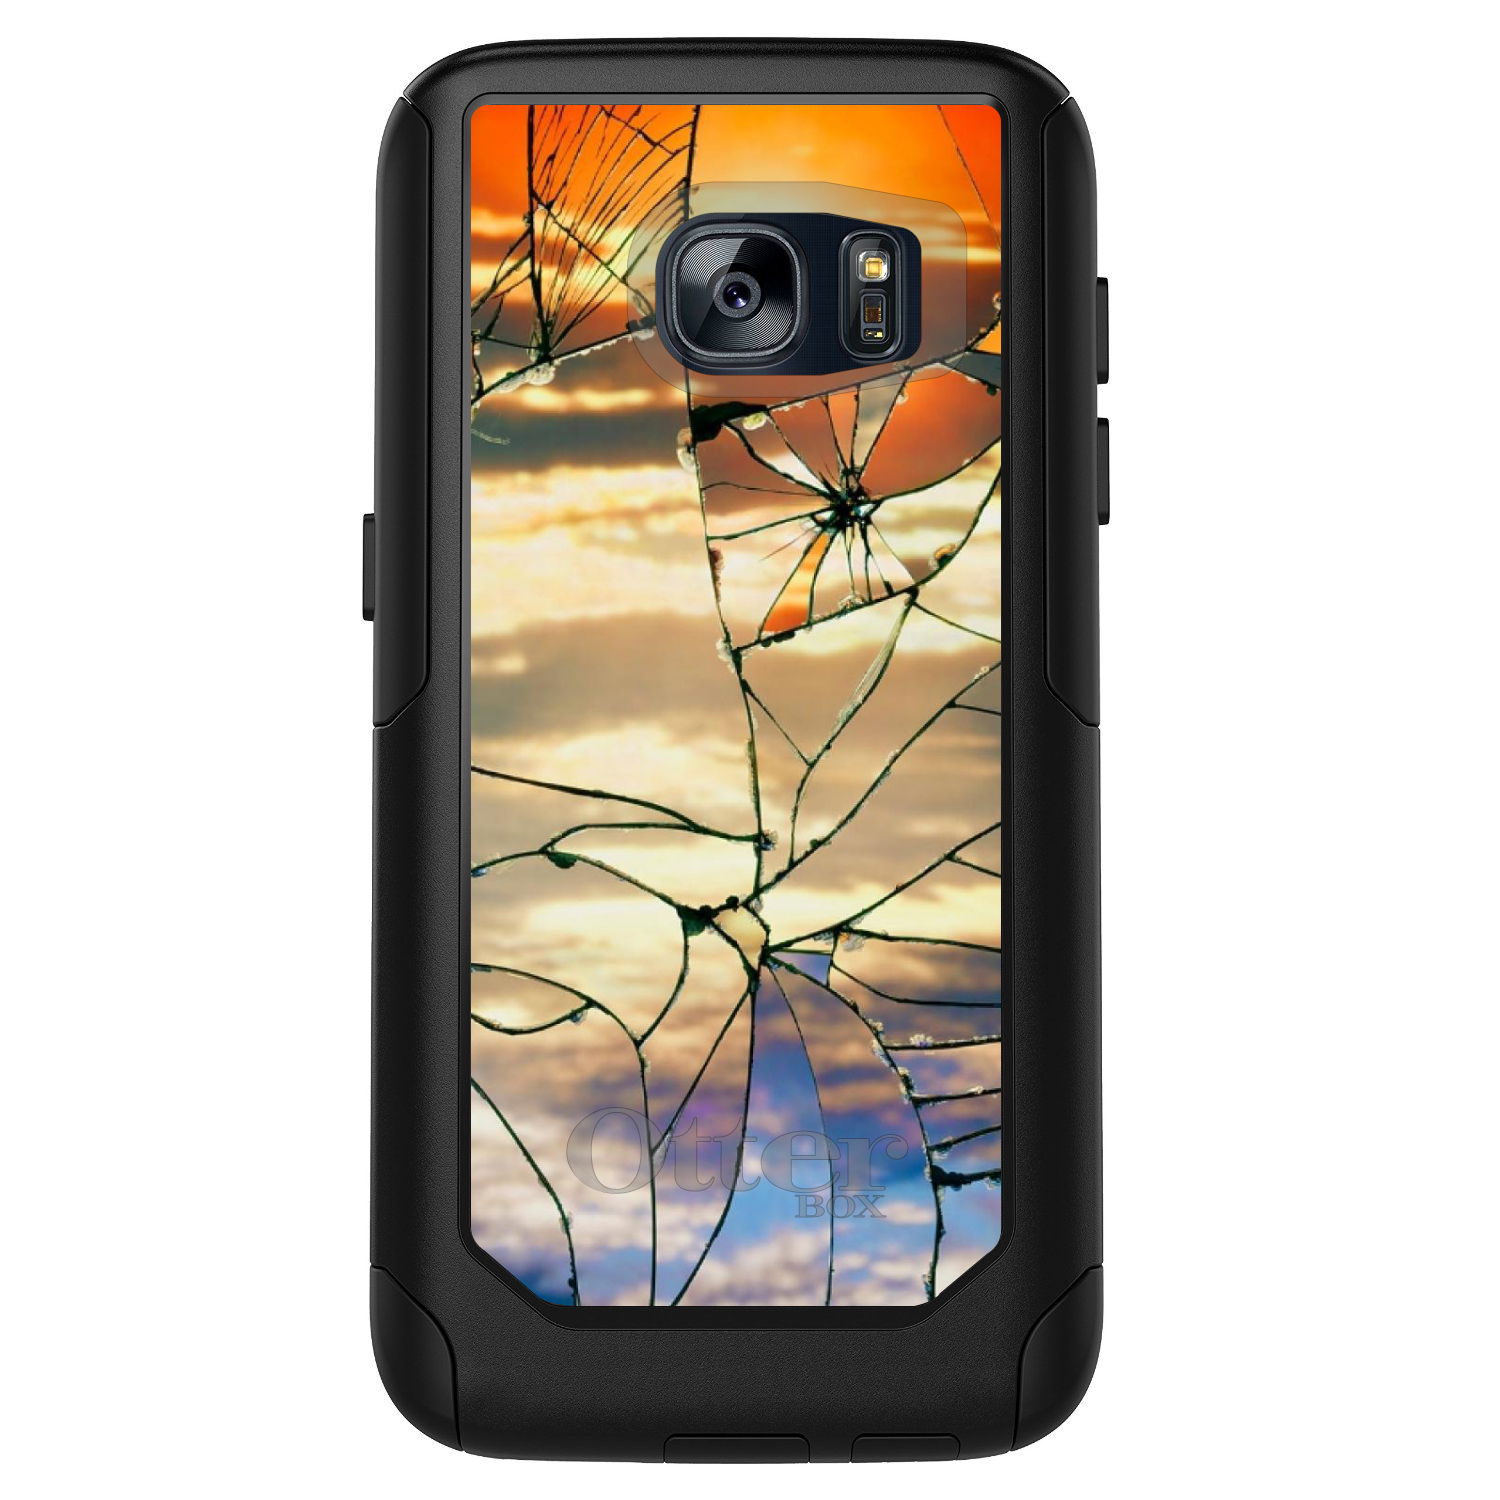 DistinctInk™ Custom Black OtterBox Commuter Series Case for Samsung Galaxy S7 - Shattered Glass Sunrise